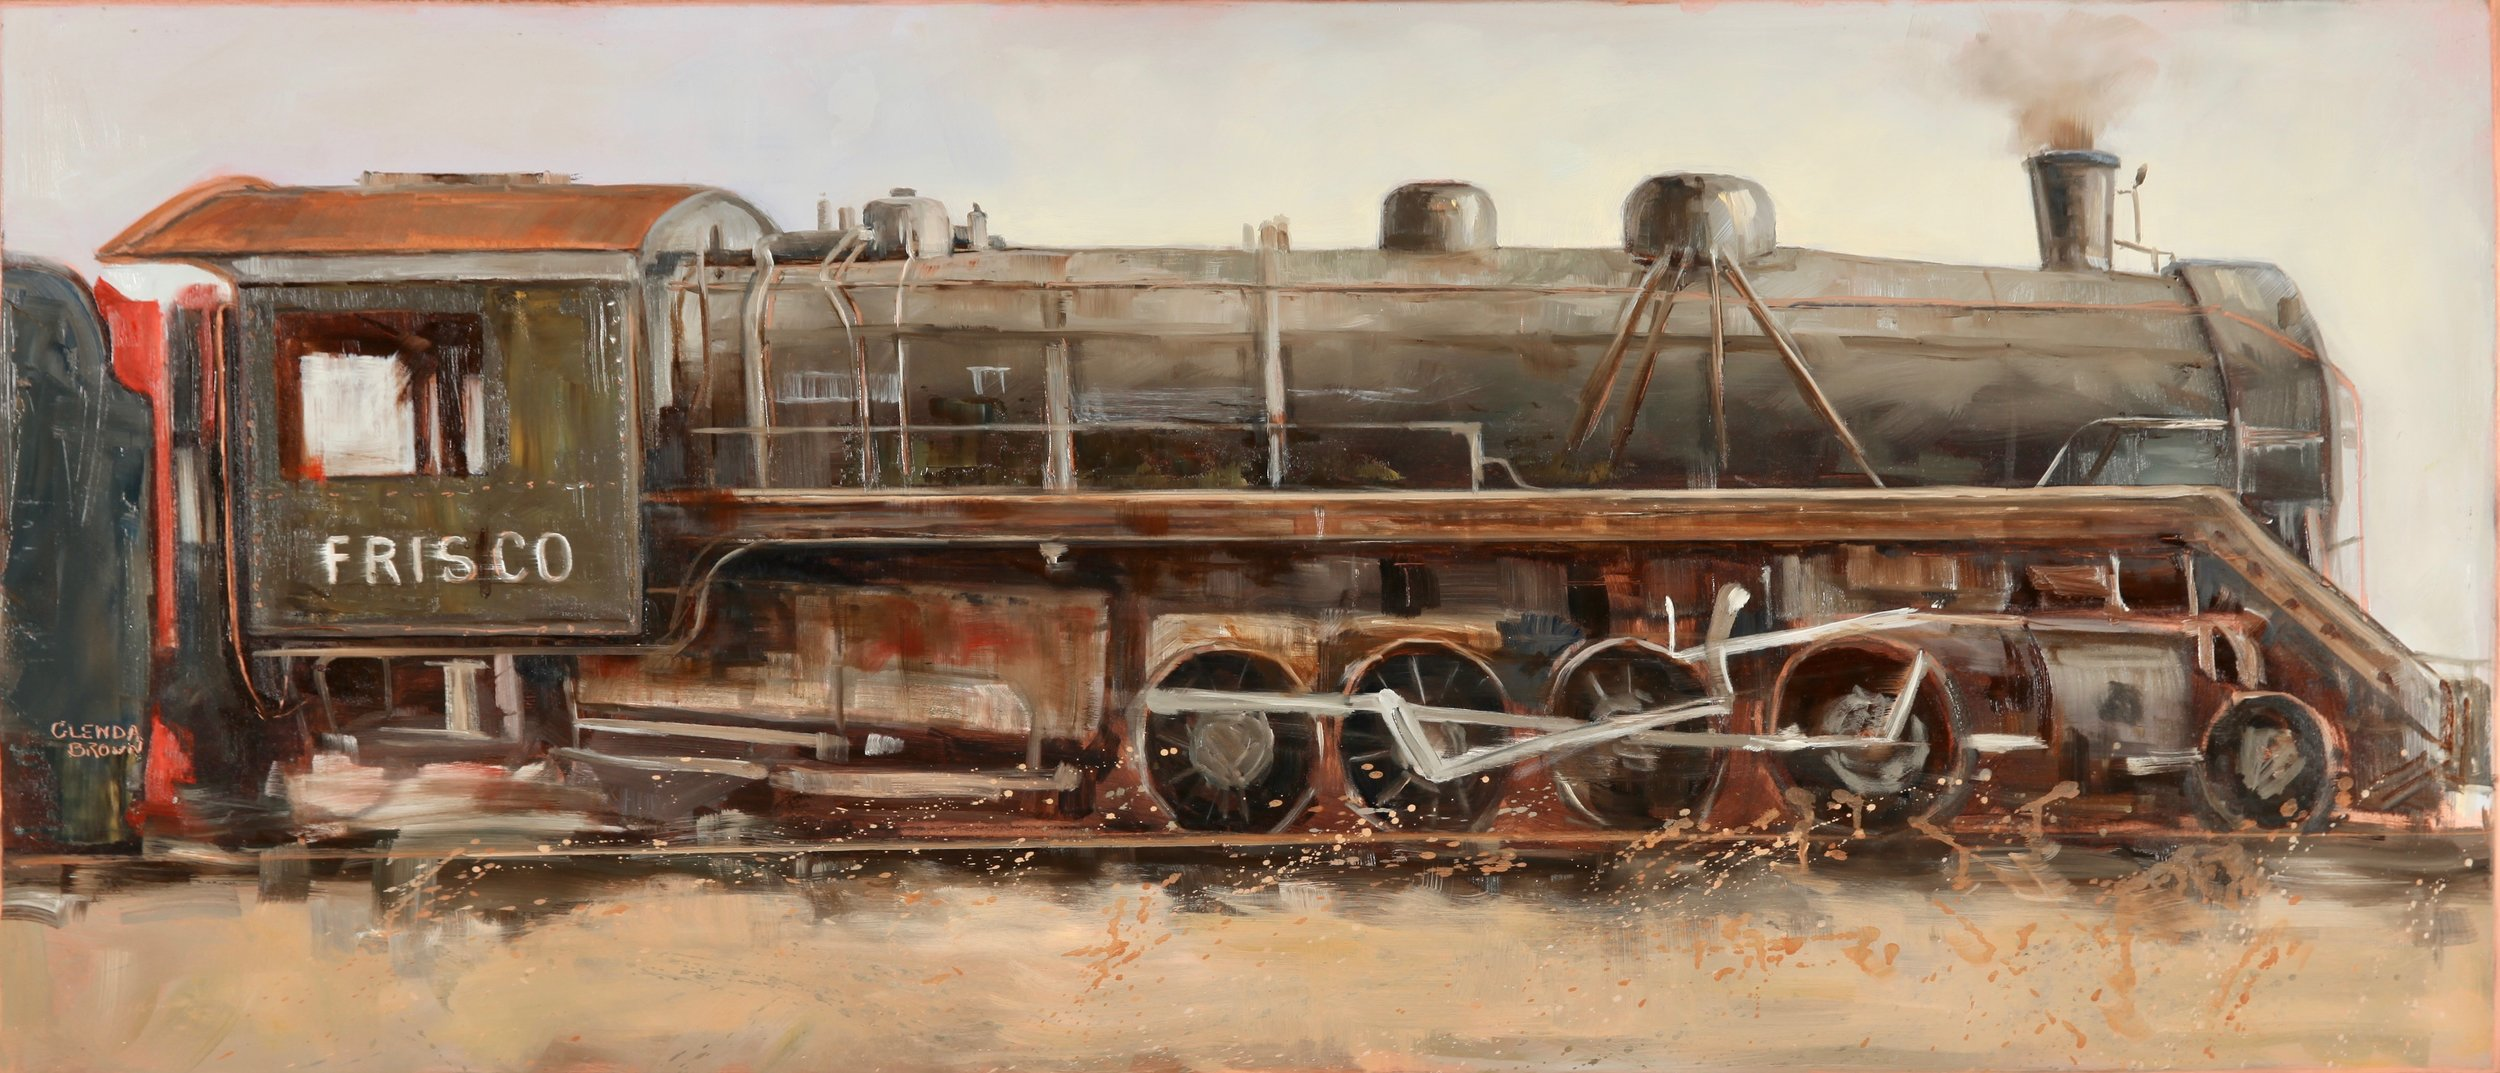 All Aboard - Oil on Copper - Available - Gallery 202 Franklin TN